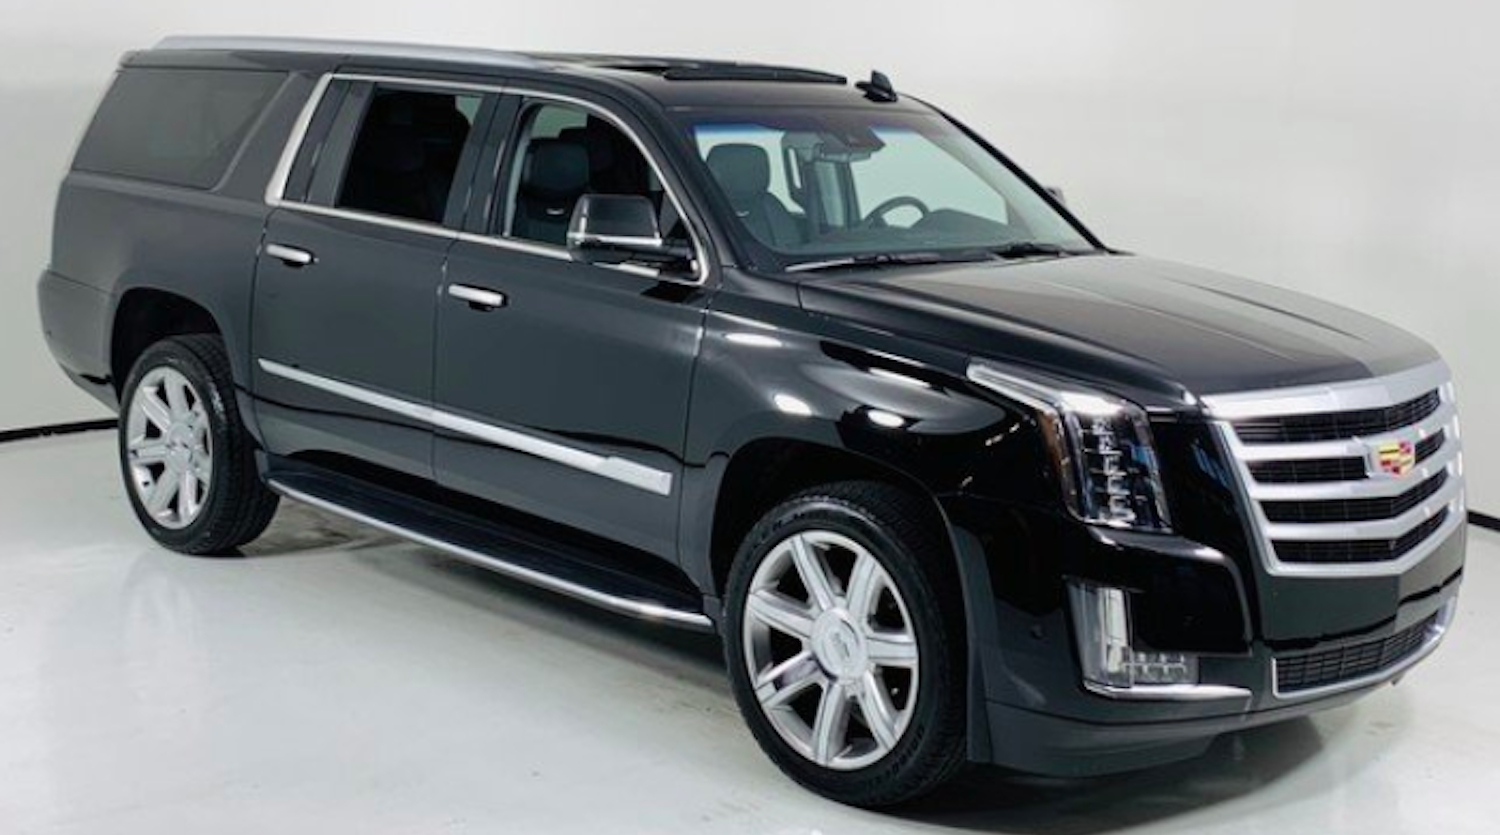 Cadillac Escalade ESV Lux Edition 2019 By Exotic Luxury Rental & Lease